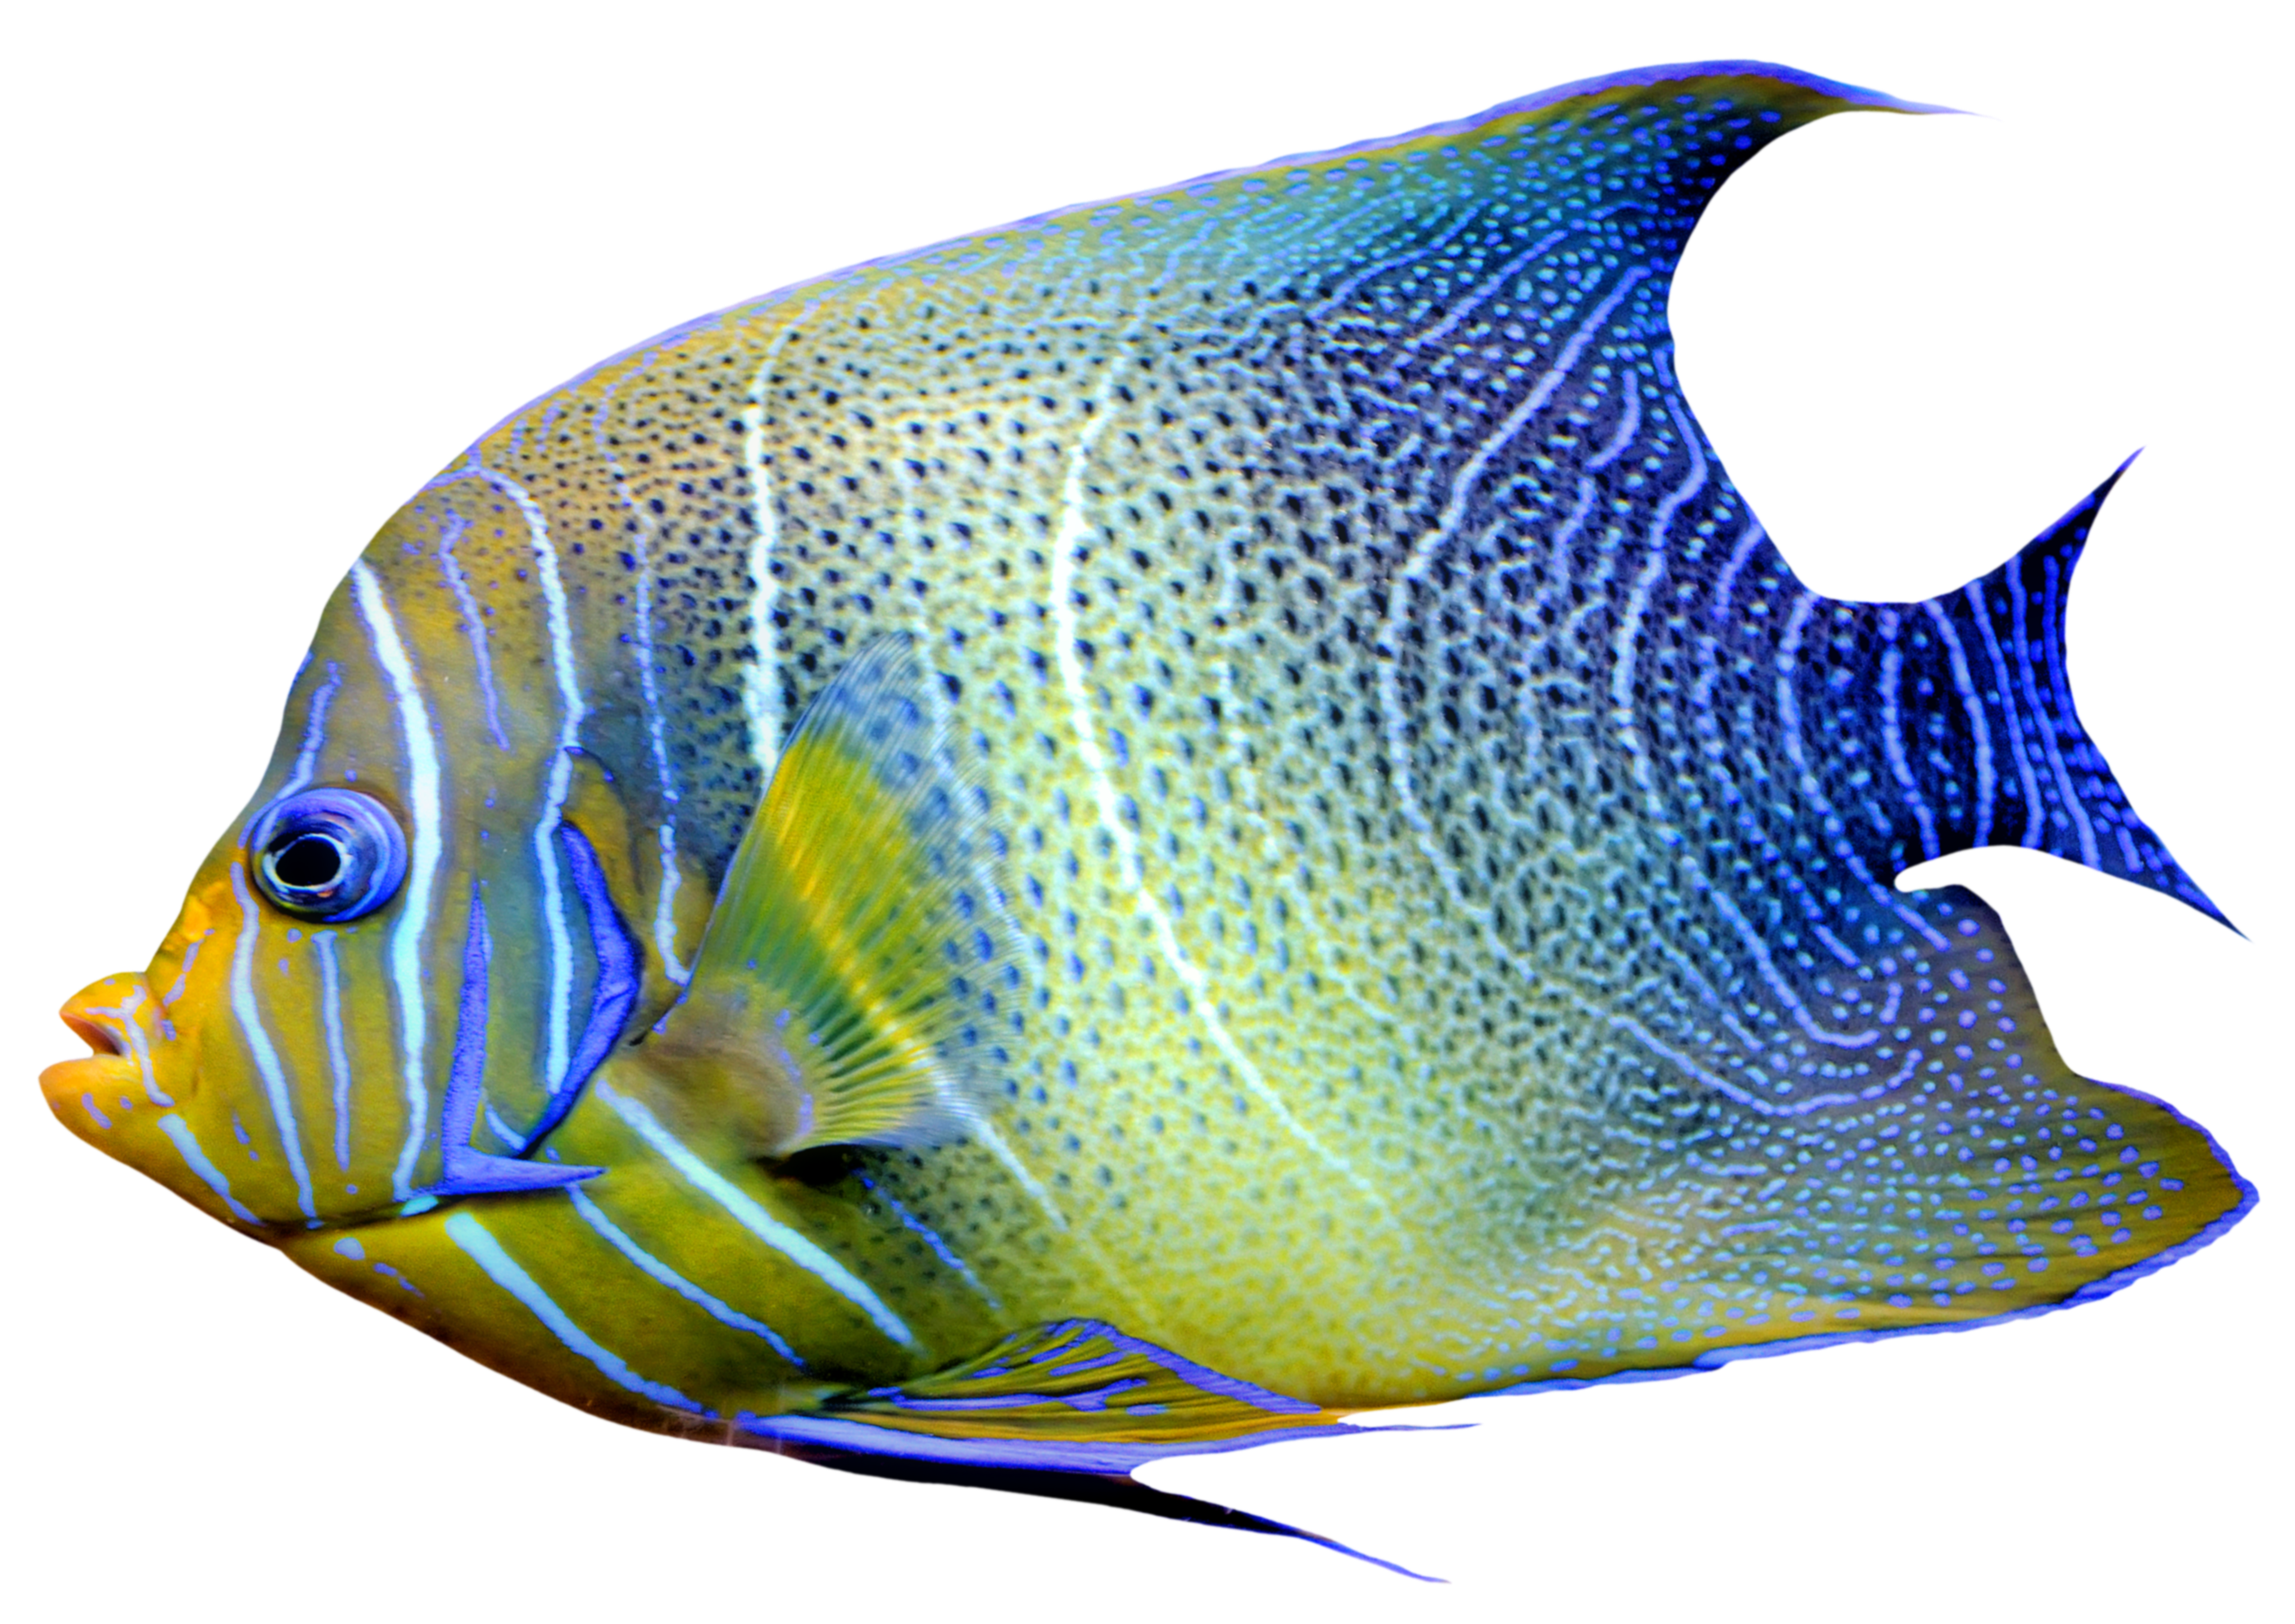 Web clipart realistic. Fish blue and yellow